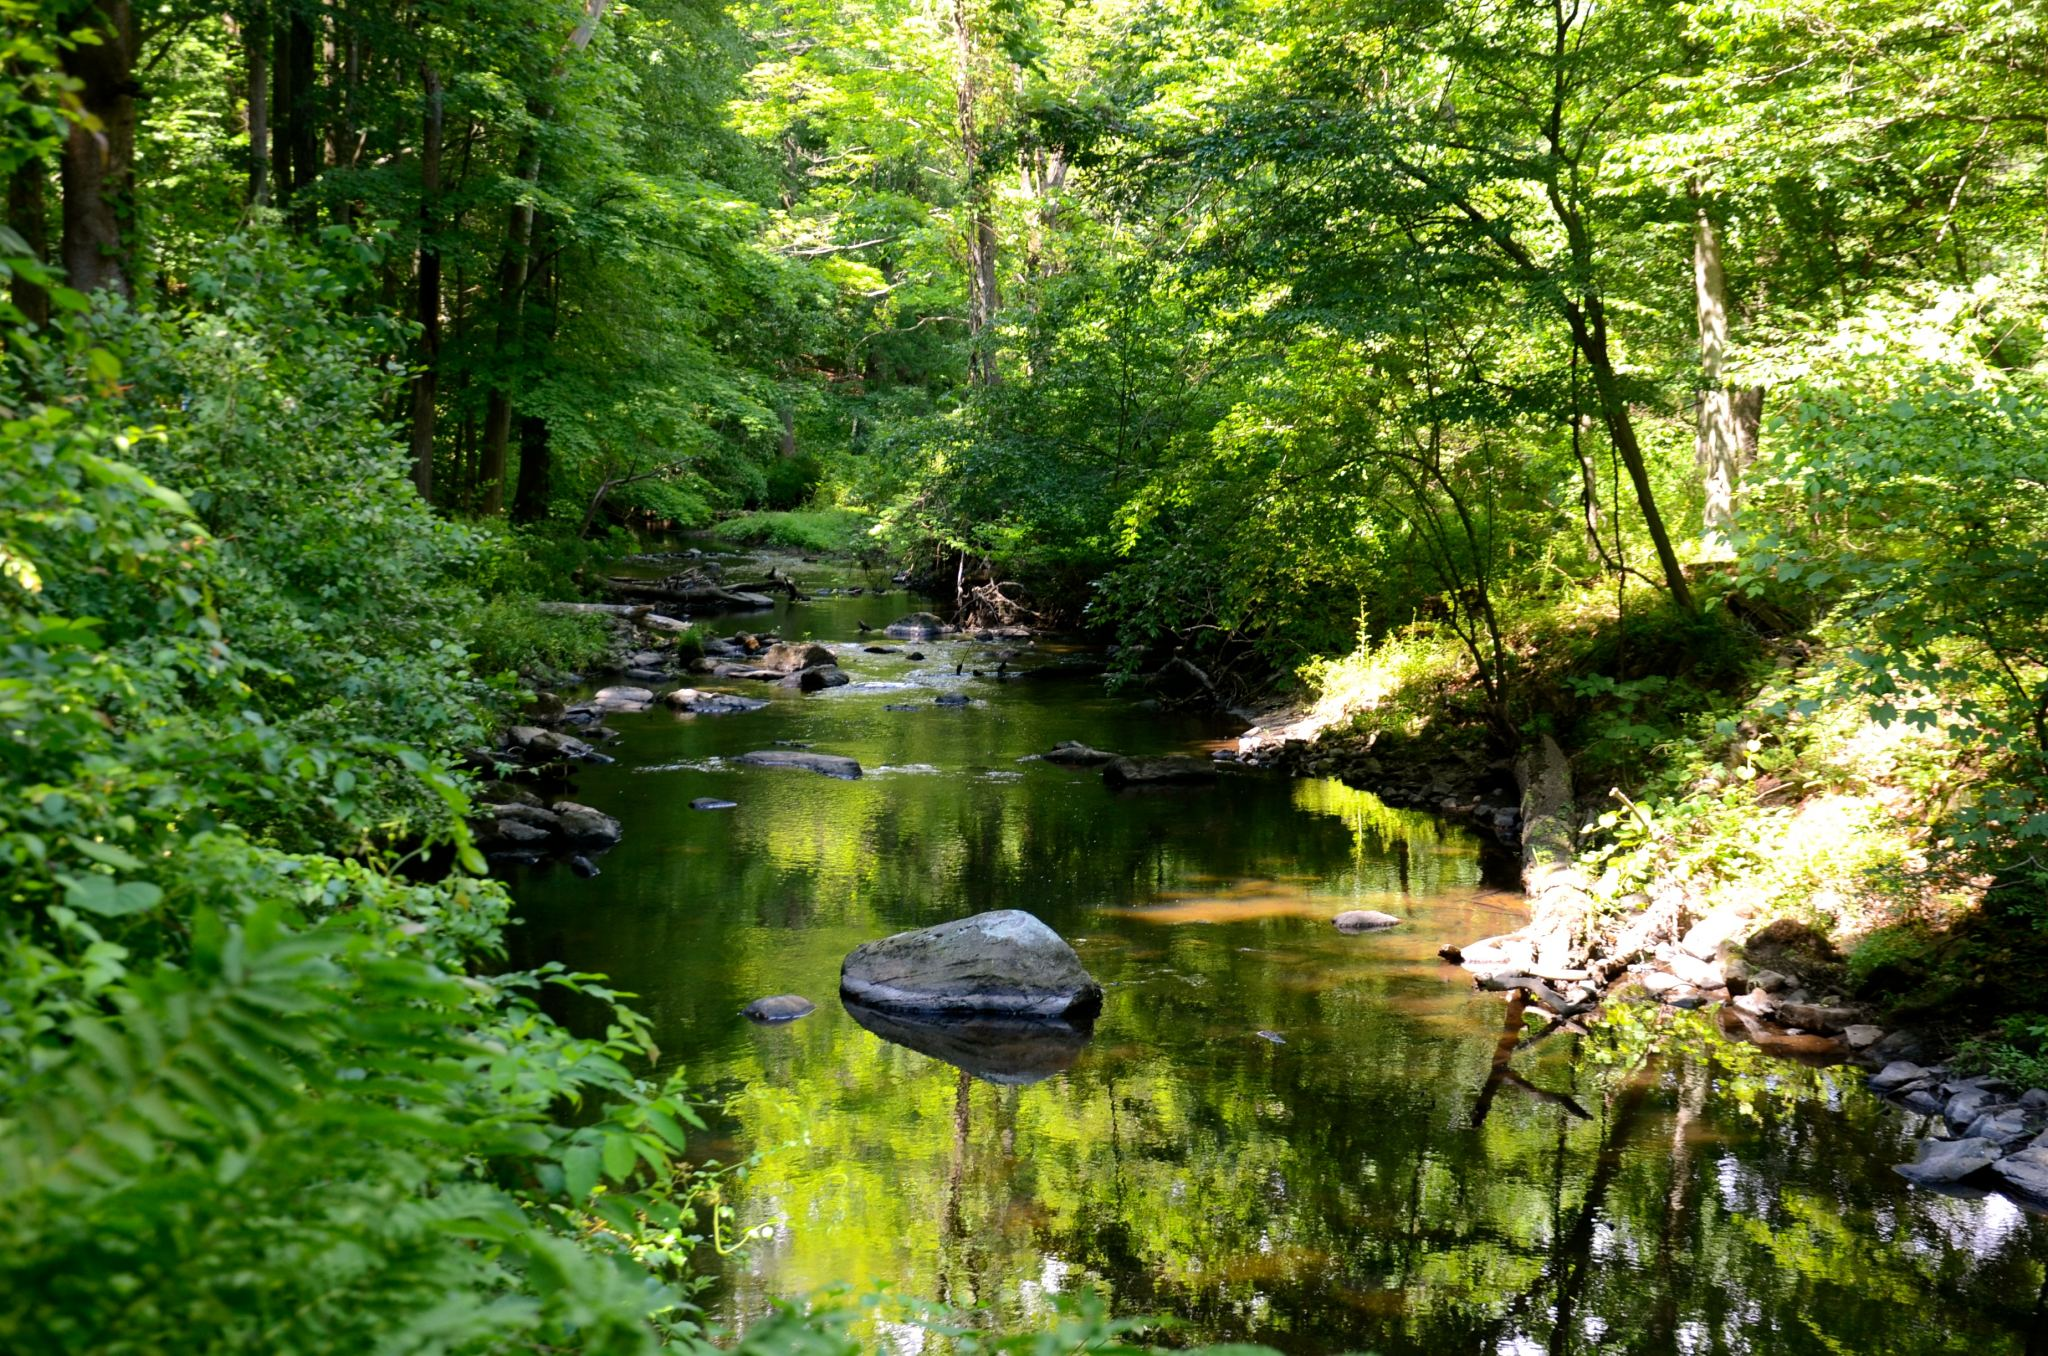 Walking by a stream in Rockefeller State Park Preserve in Westchester County, New York